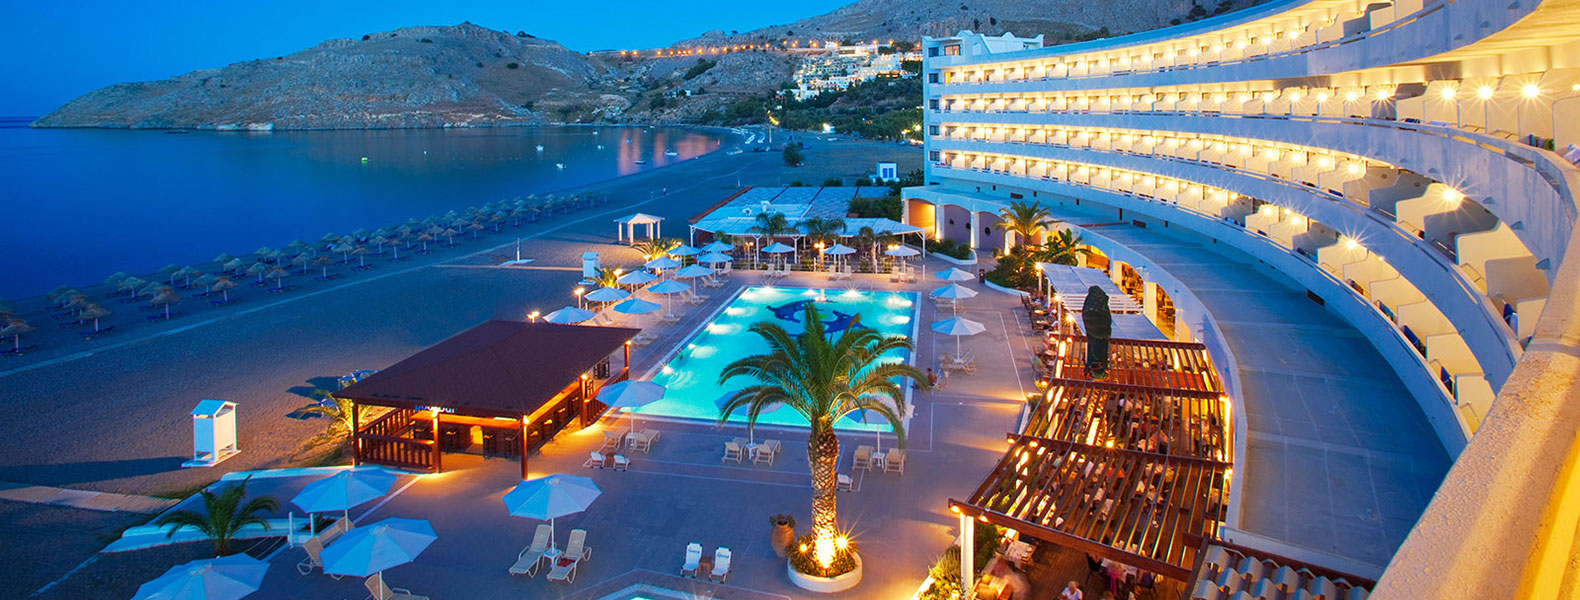 ΤUI  Sensimar Lindos Bay Resort & Spa - добро пожаловать!